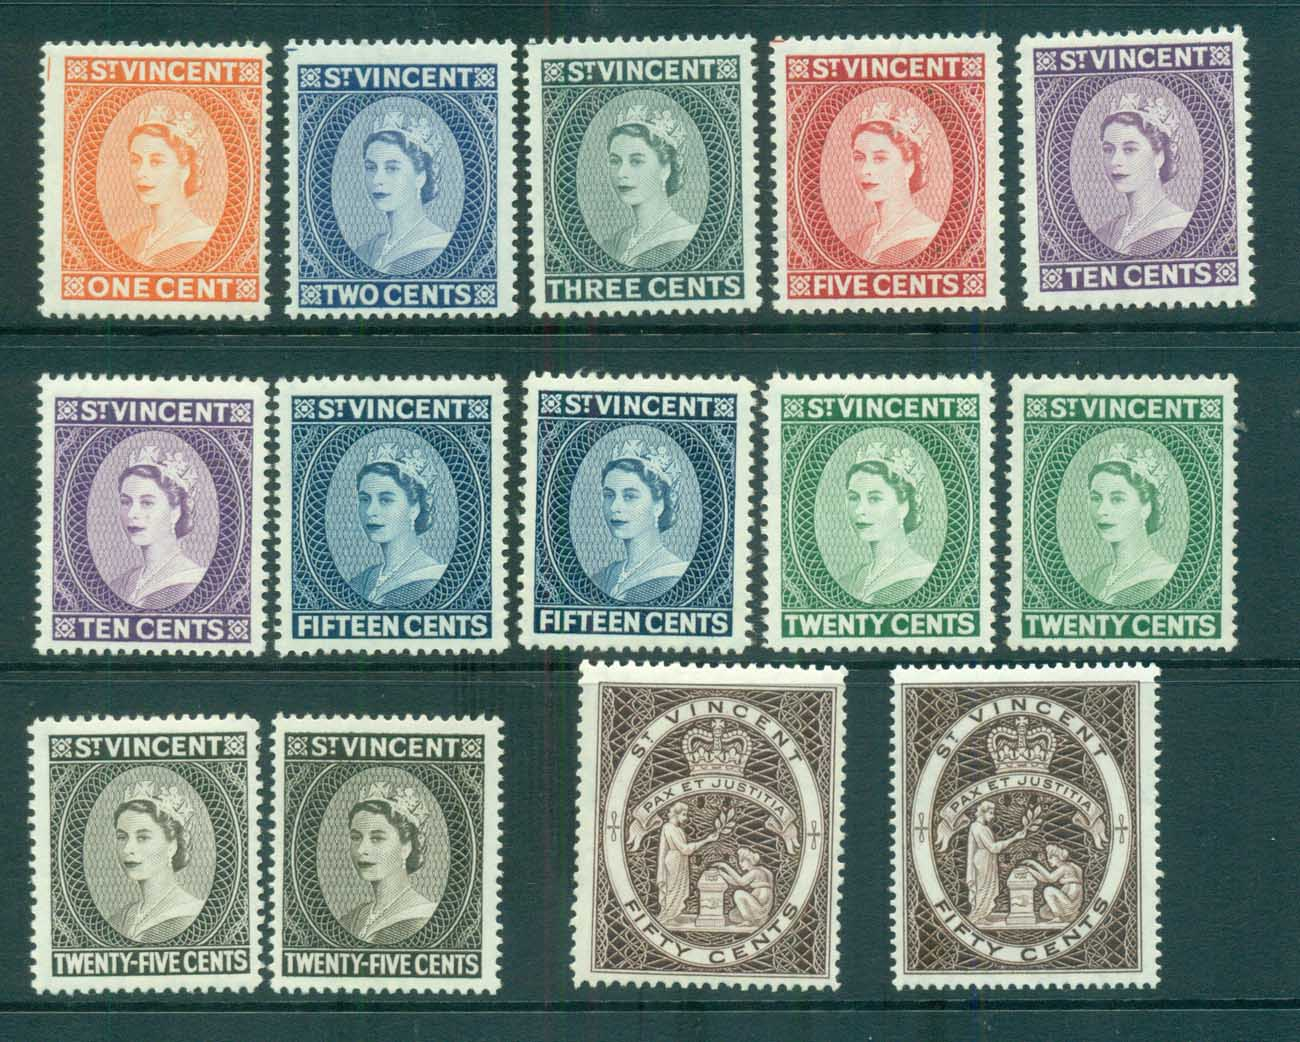 St Vincent 1964-65 QEII Defins Wmk Crown CA All Perfs MUH lot72910